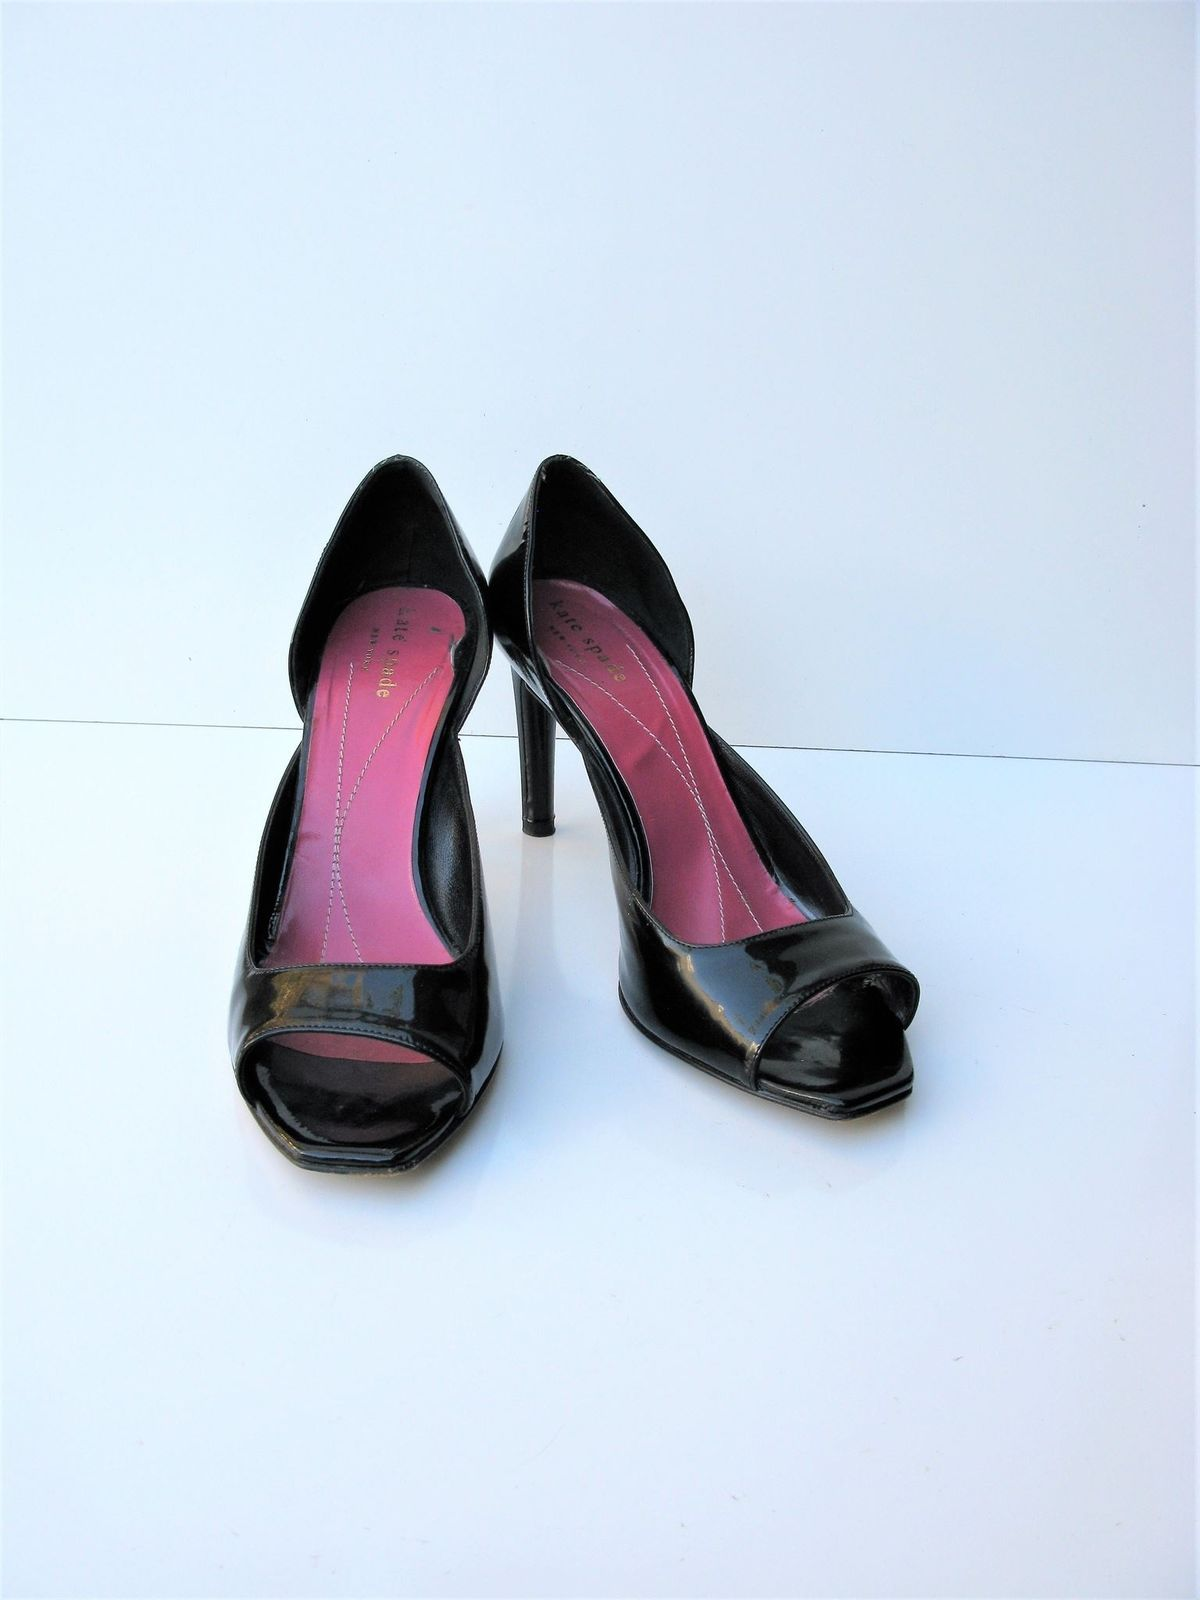 Pumps Heels d'Orsay Open Toe Patent Leather Kate Spade 7.5 $298 Mint Worn Once